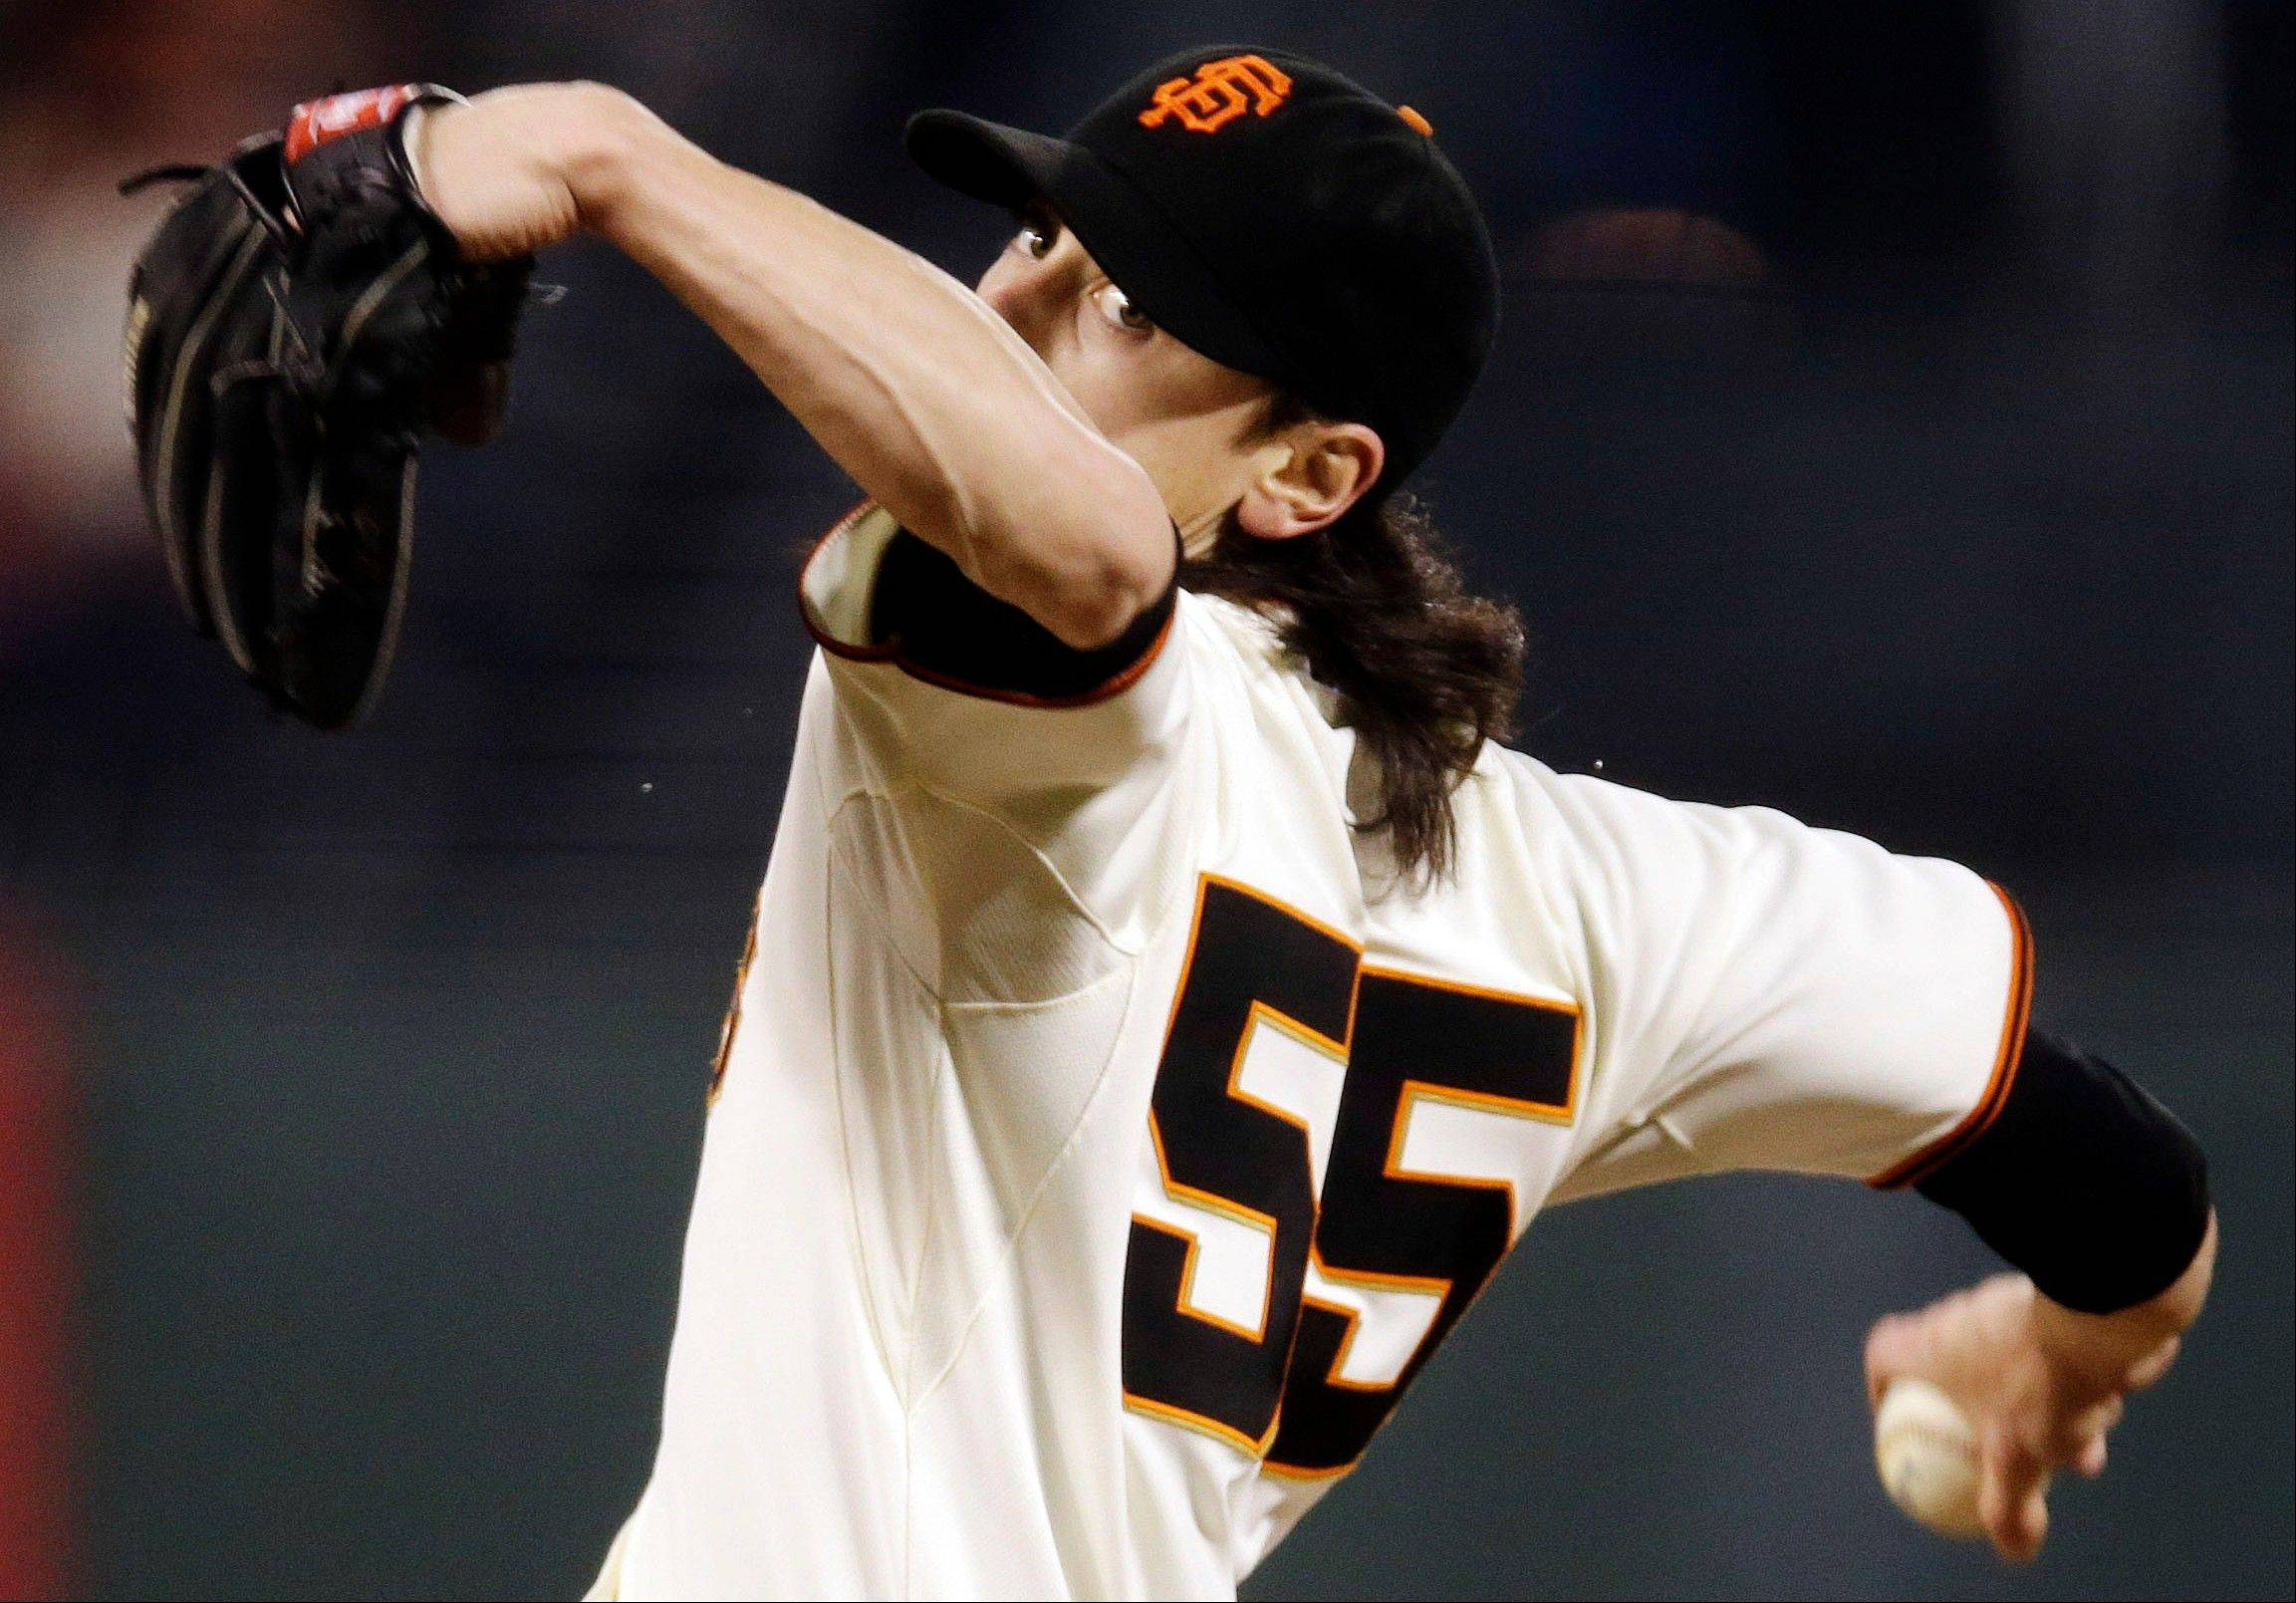 San Francisco starting pitcher Tim Lincecum improved to just 4-8 with a 3.67 ERA at home this season, but he sure looked like his old stellar self Tuesday against Colorado.